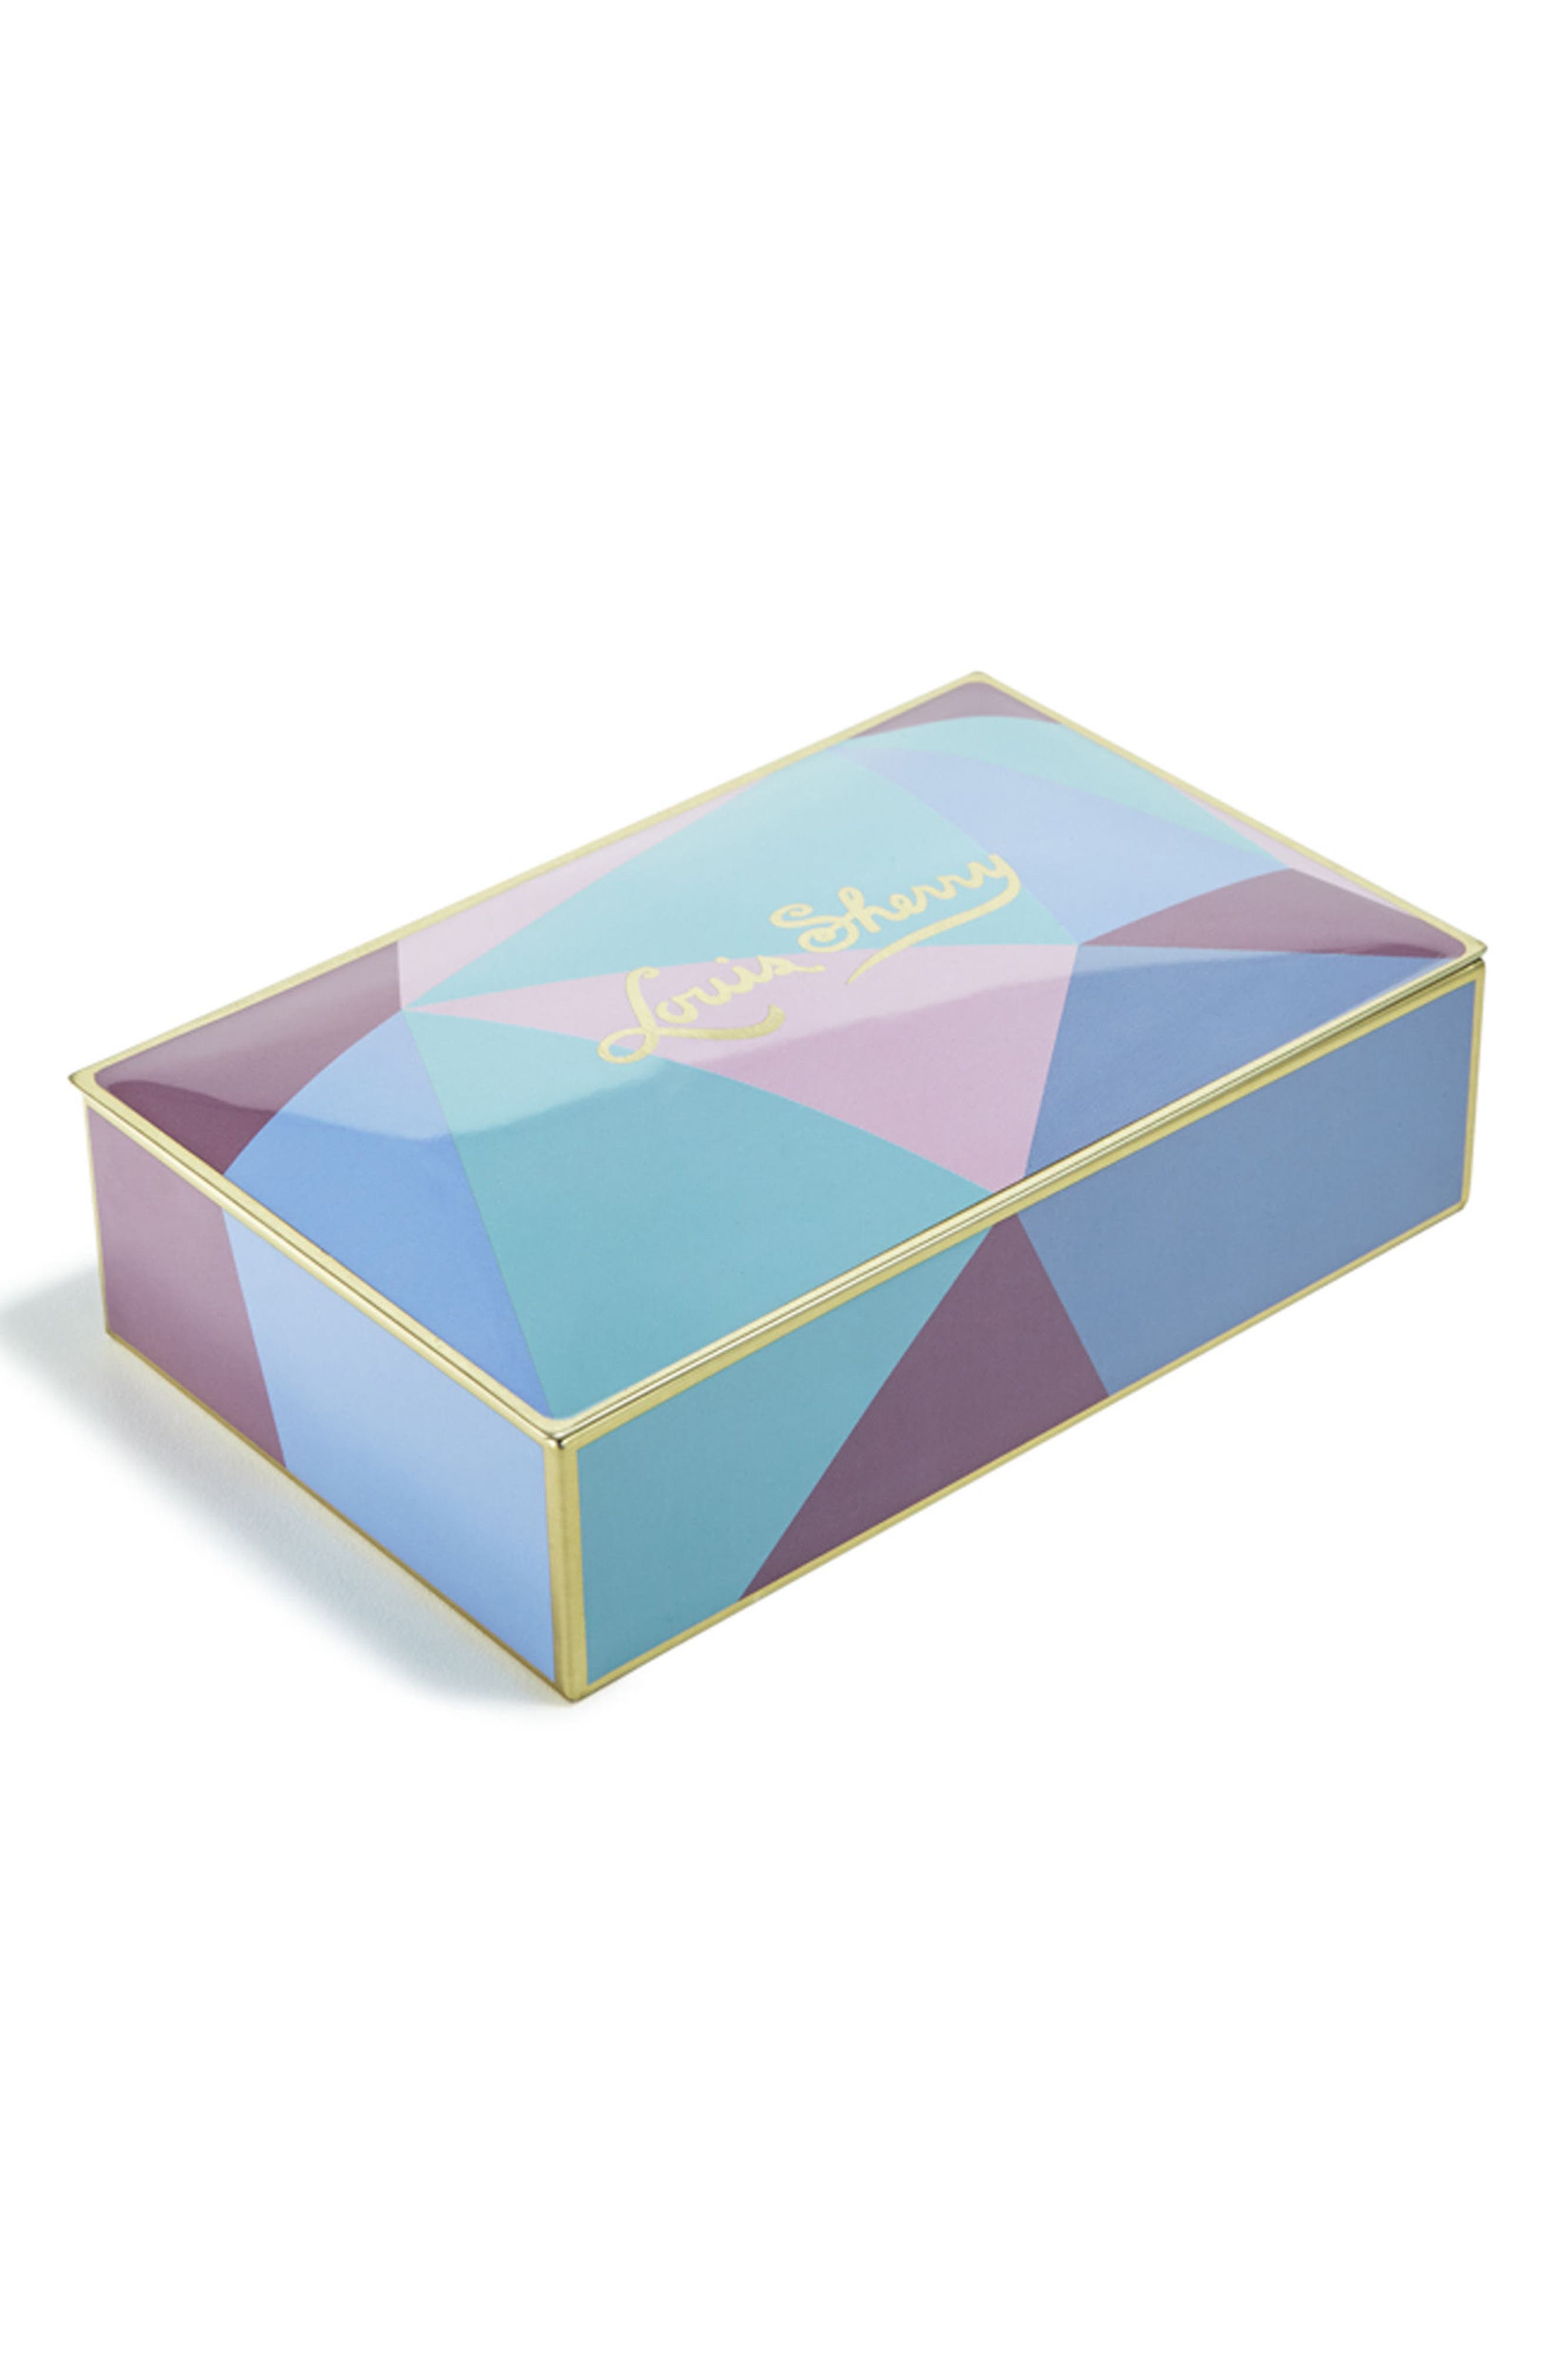 Miles Redd Cubist 12-Piece Chocolate Truffle Tin,                             Main thumbnail 1, color,                             BLUE MULTI